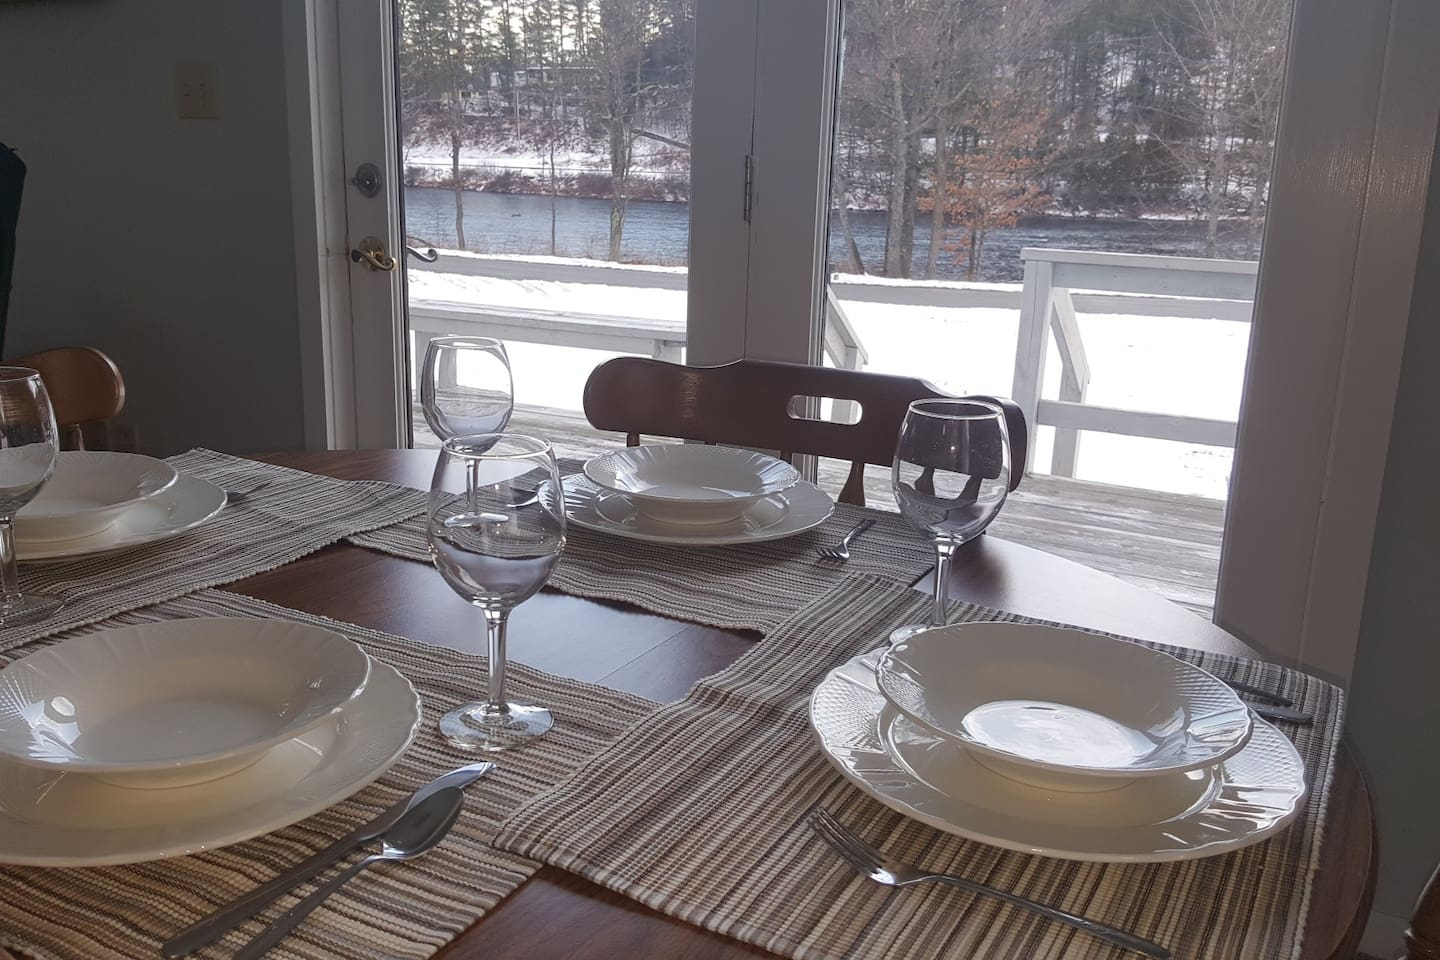 View of the Hudson River from your table. Enjoy your morning cup of coffee or an evening meal.